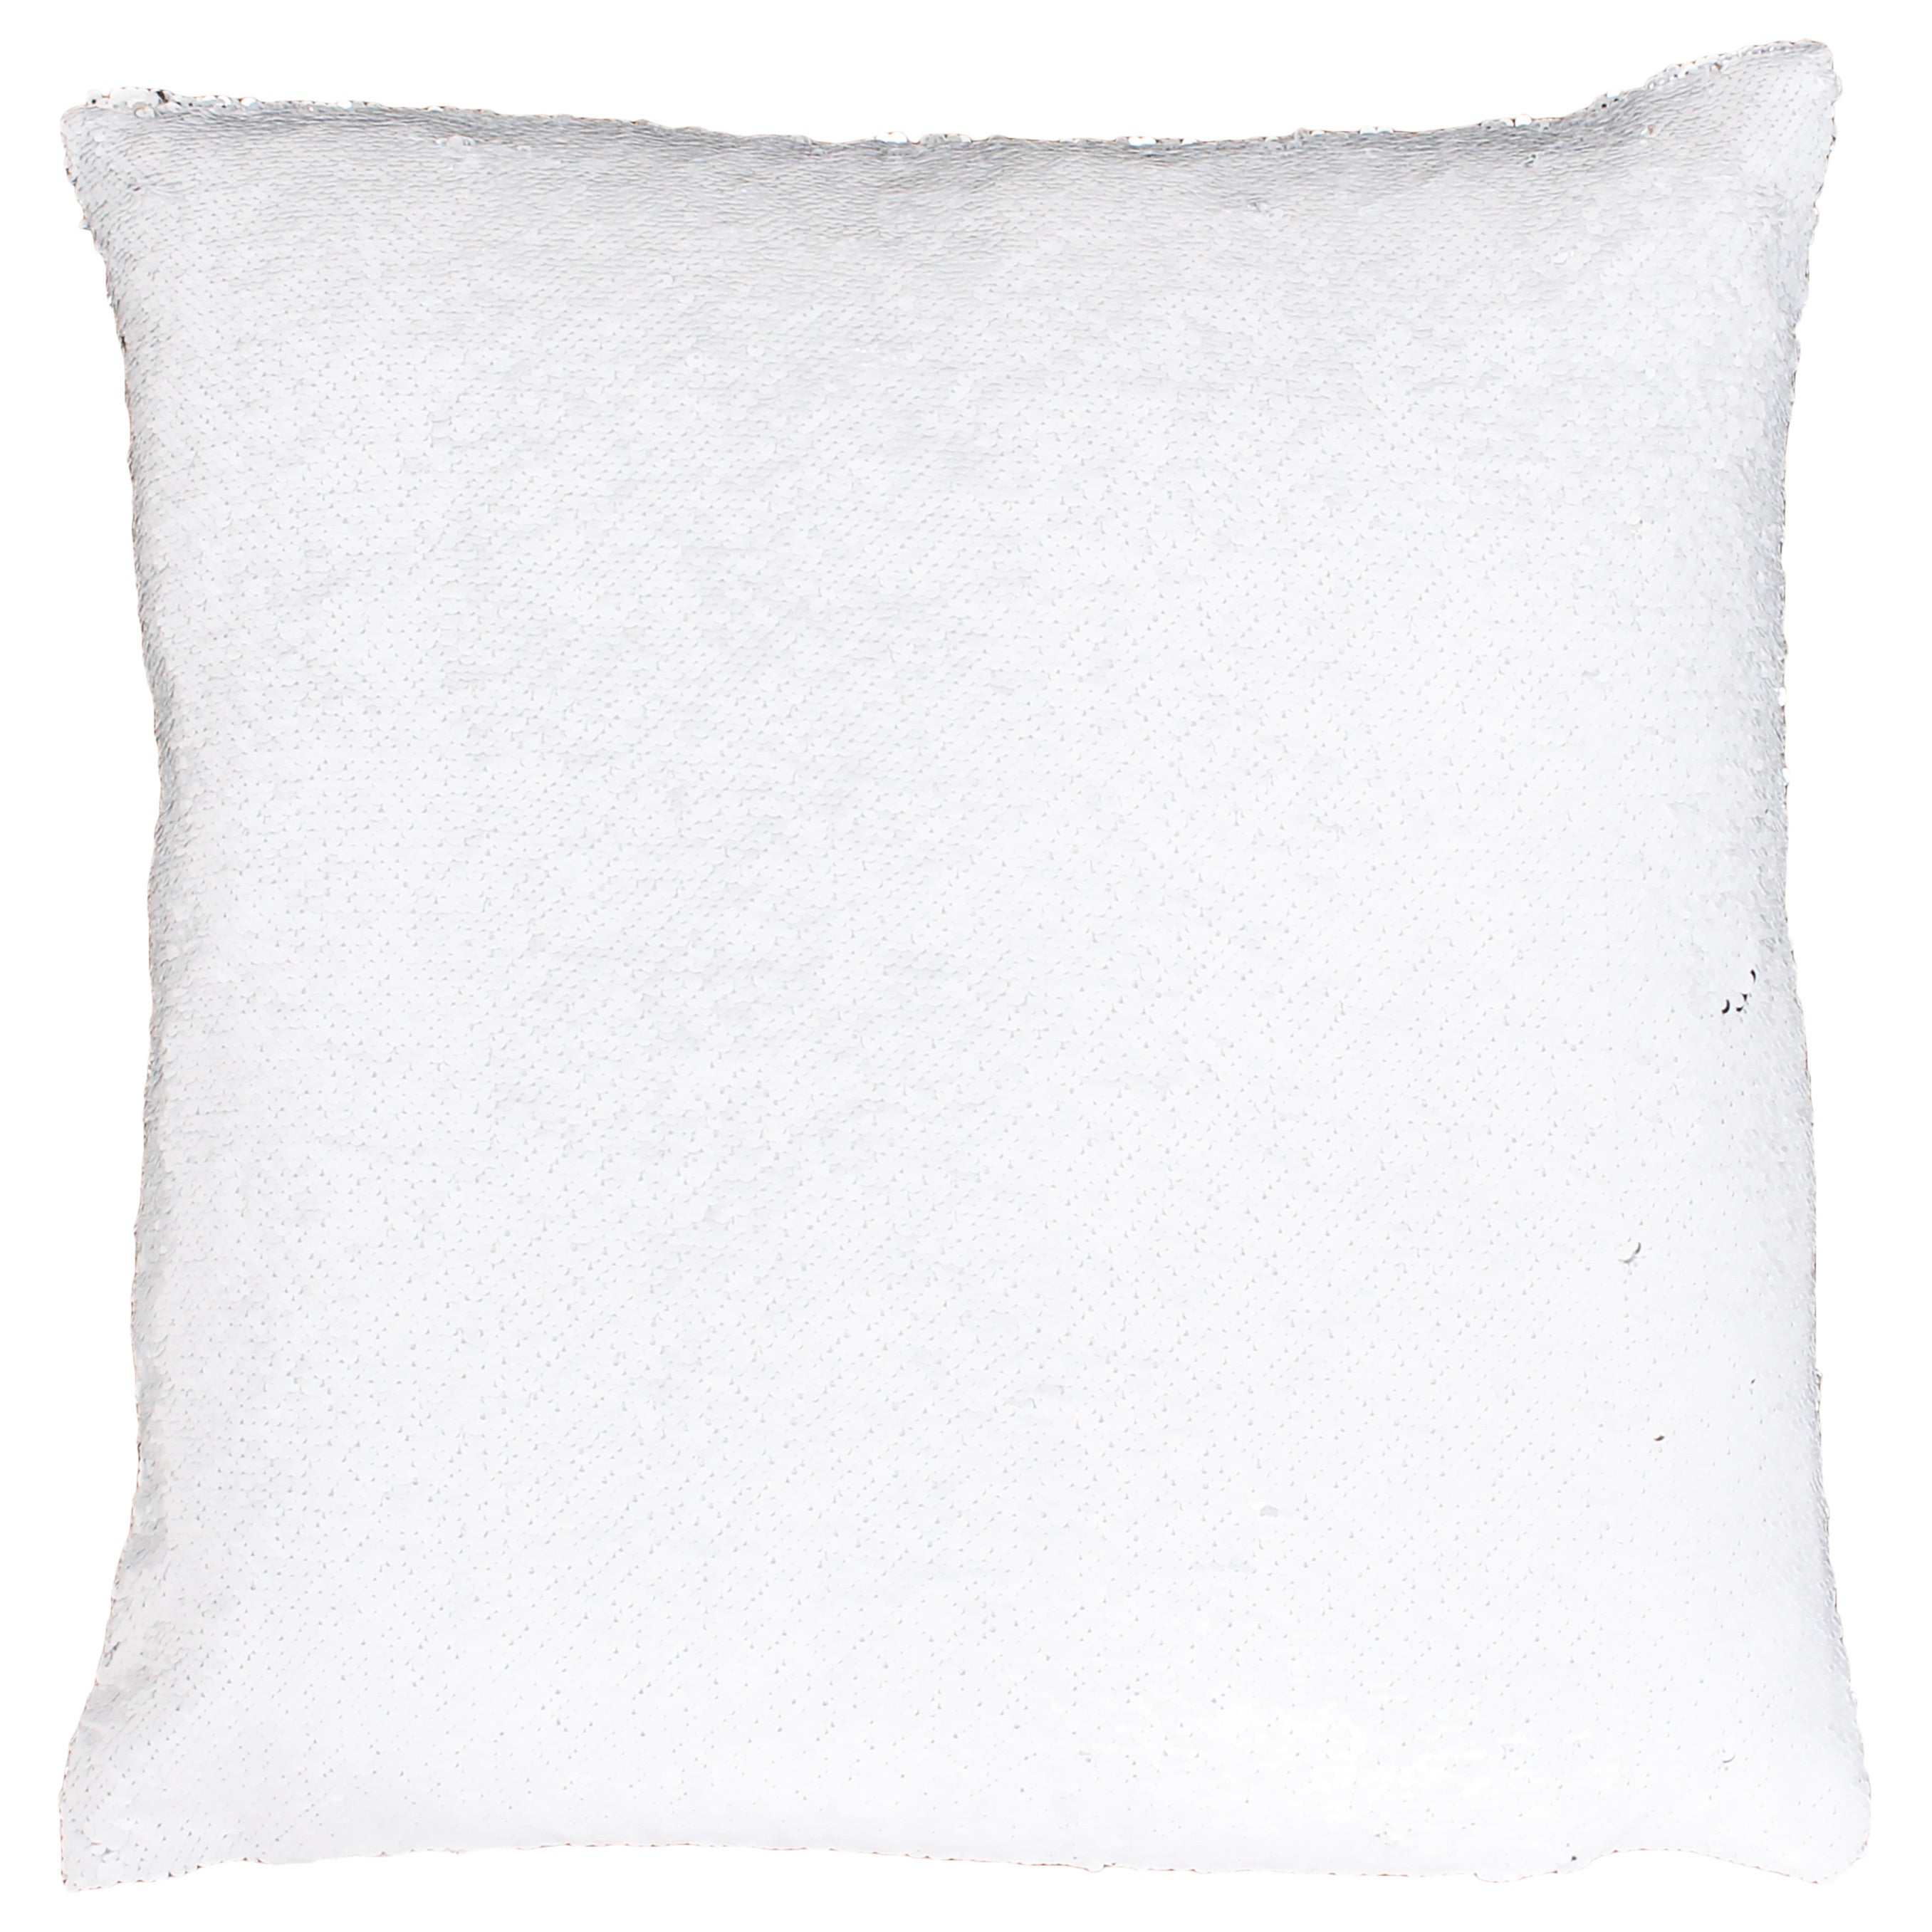 Best Melody Mermaid Reversible Sequin 20-inch Feather-filled Pillow  VS12